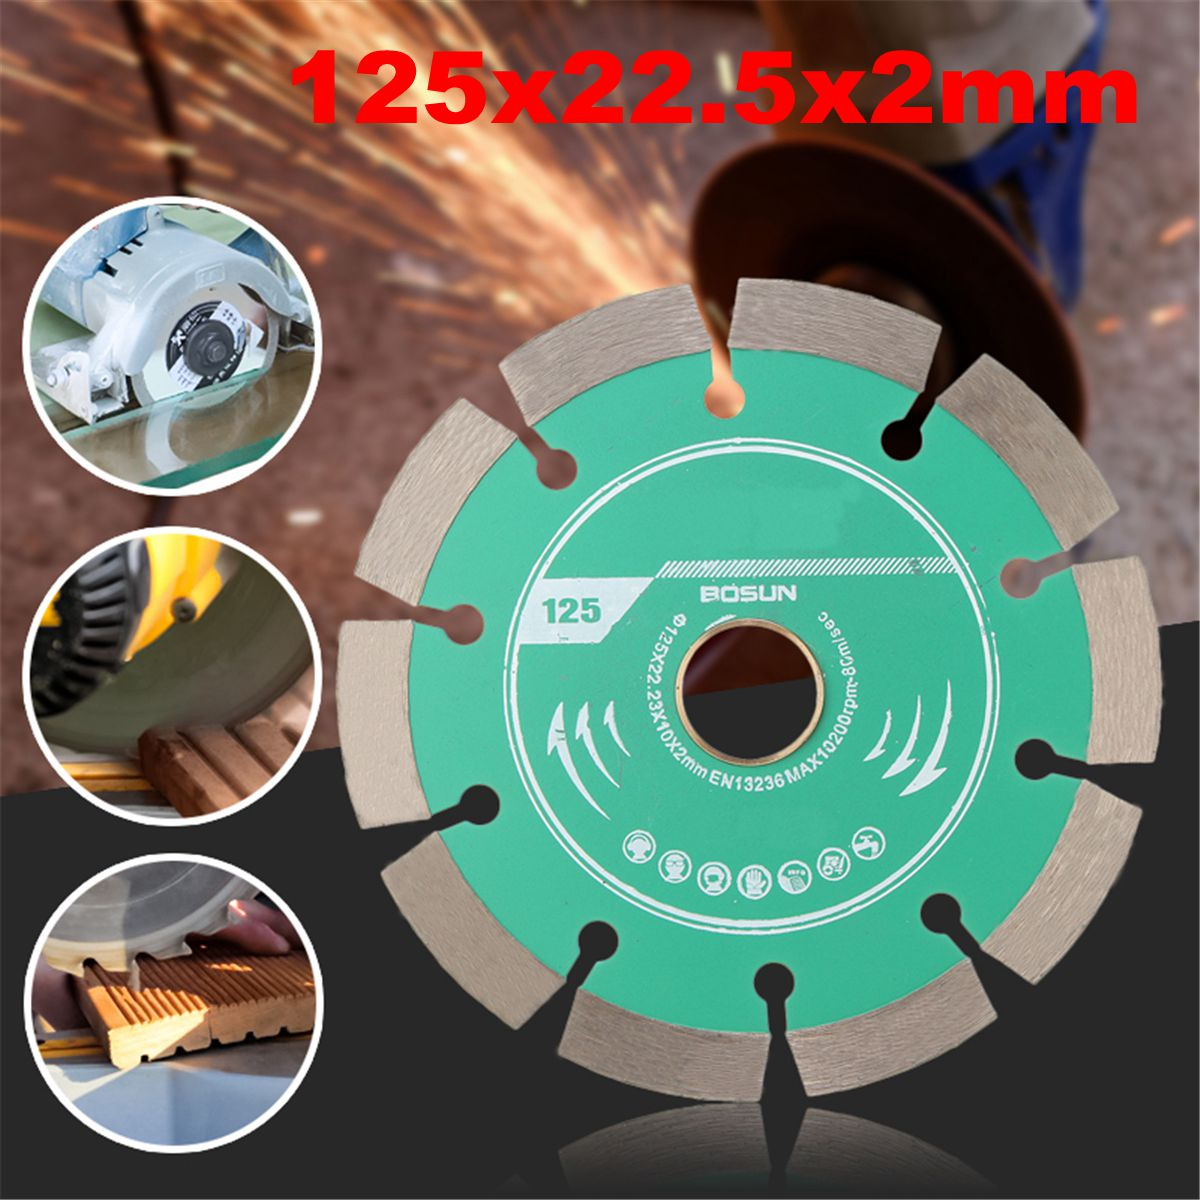 1pcs 125mm Metal Alloy Diamond Saw Blade Wheel Cutting Disc For Concrete Marble Masonry Tile Thickness 2mm Engineering Cutting